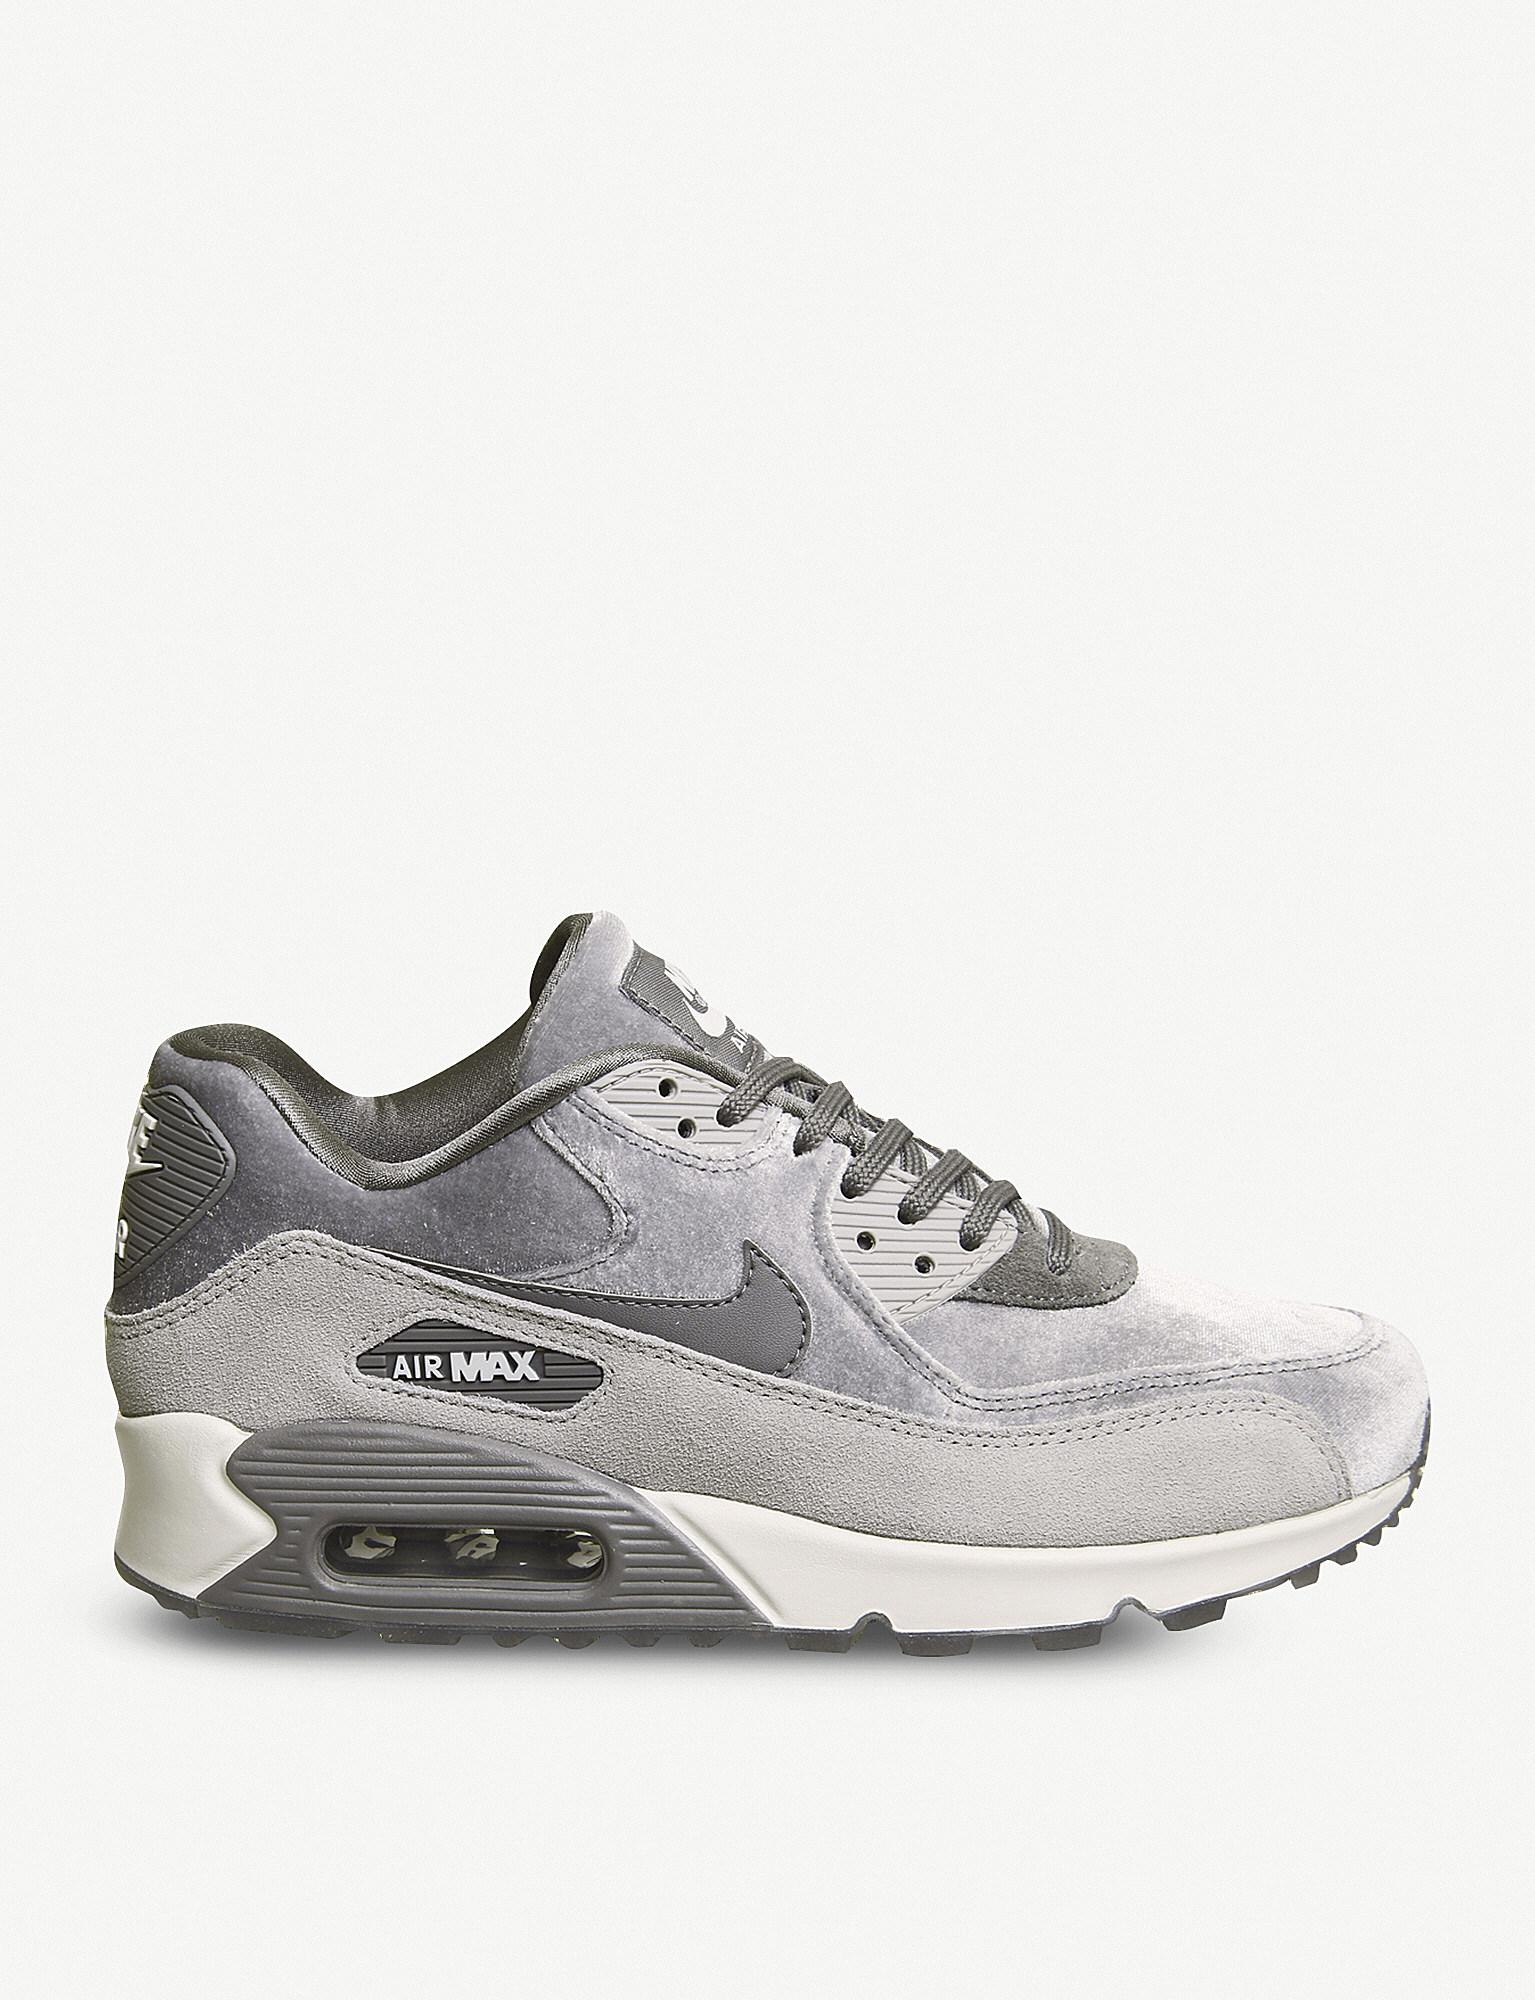 site full of Baskets half off 4505b d1c1e uk trainers nike air span